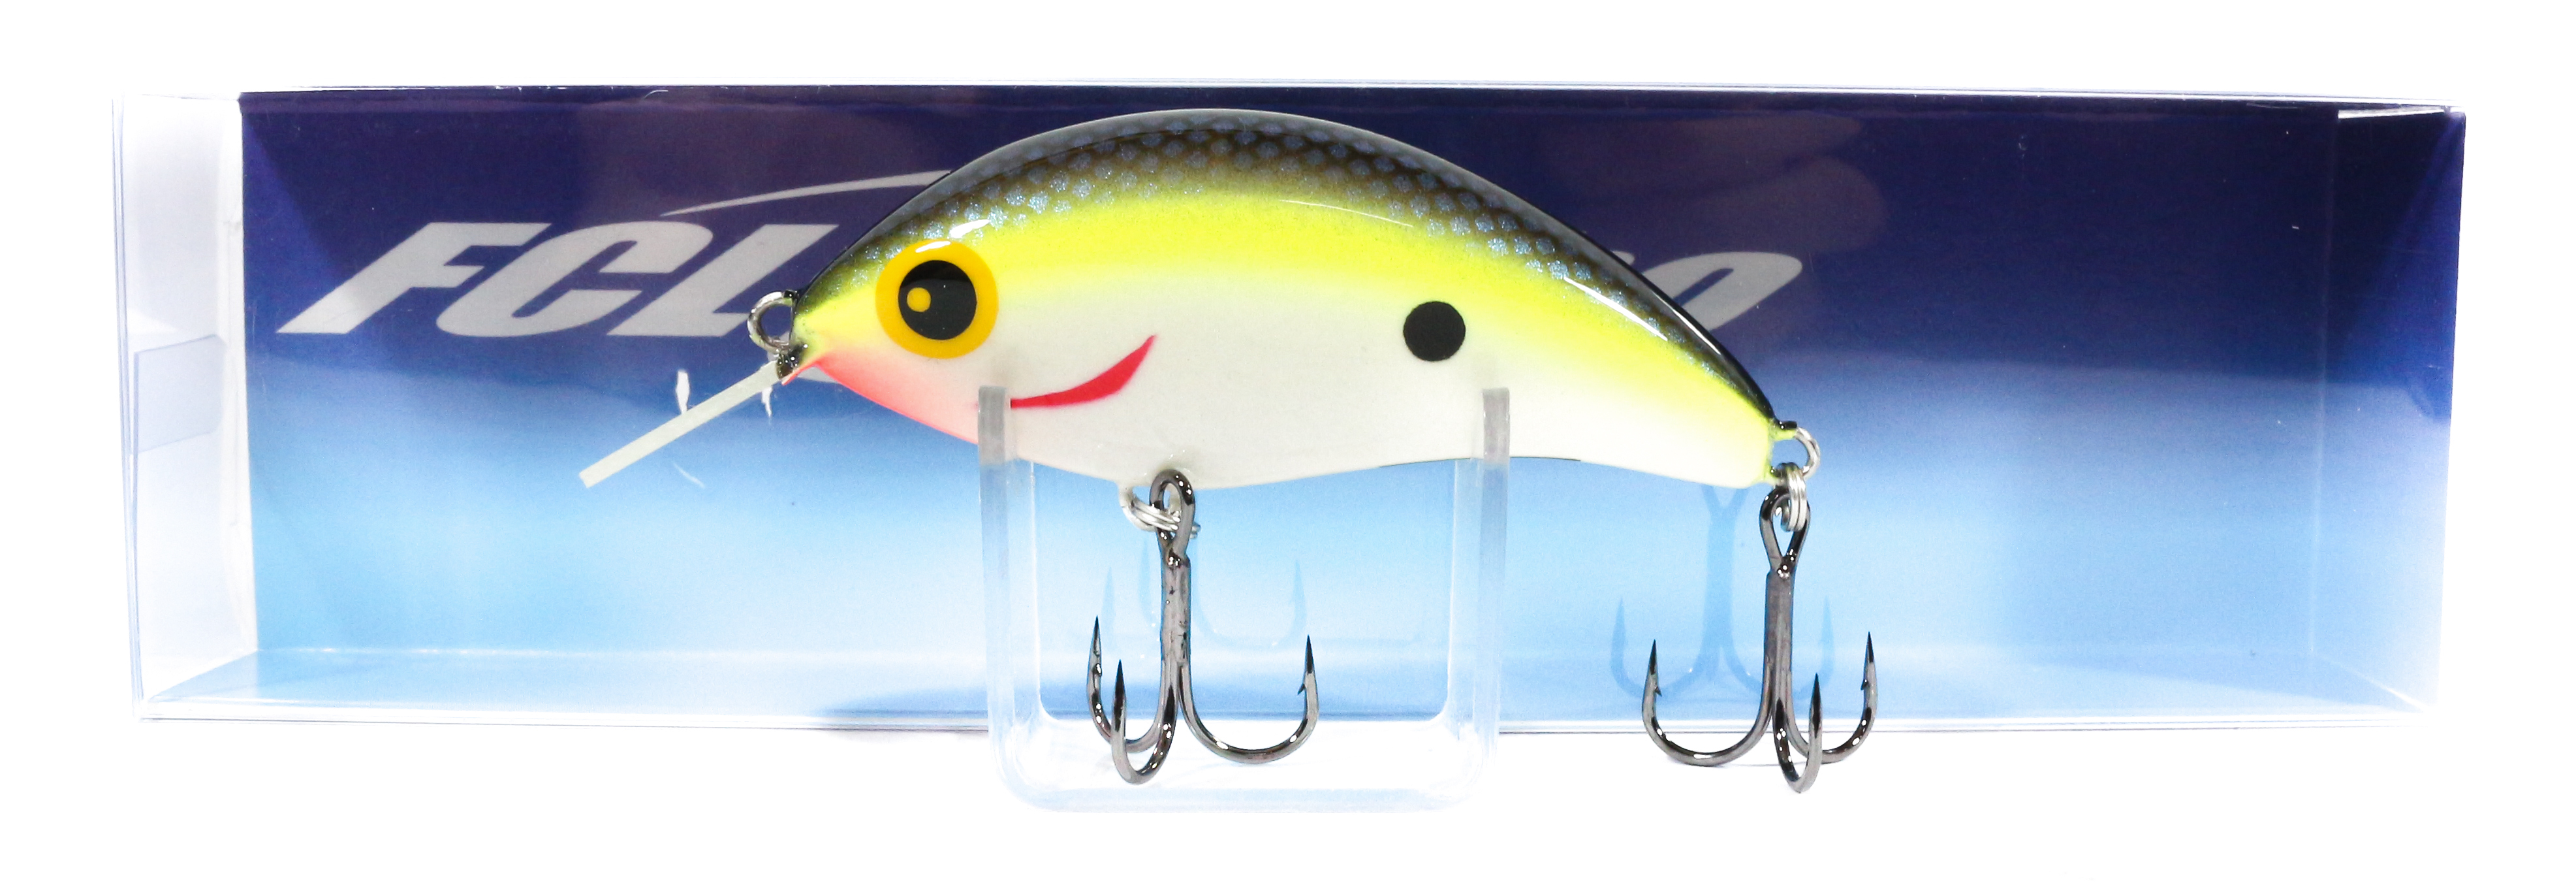 FCL Labo Lure Keshal 63 Floating Lure NS (4365)